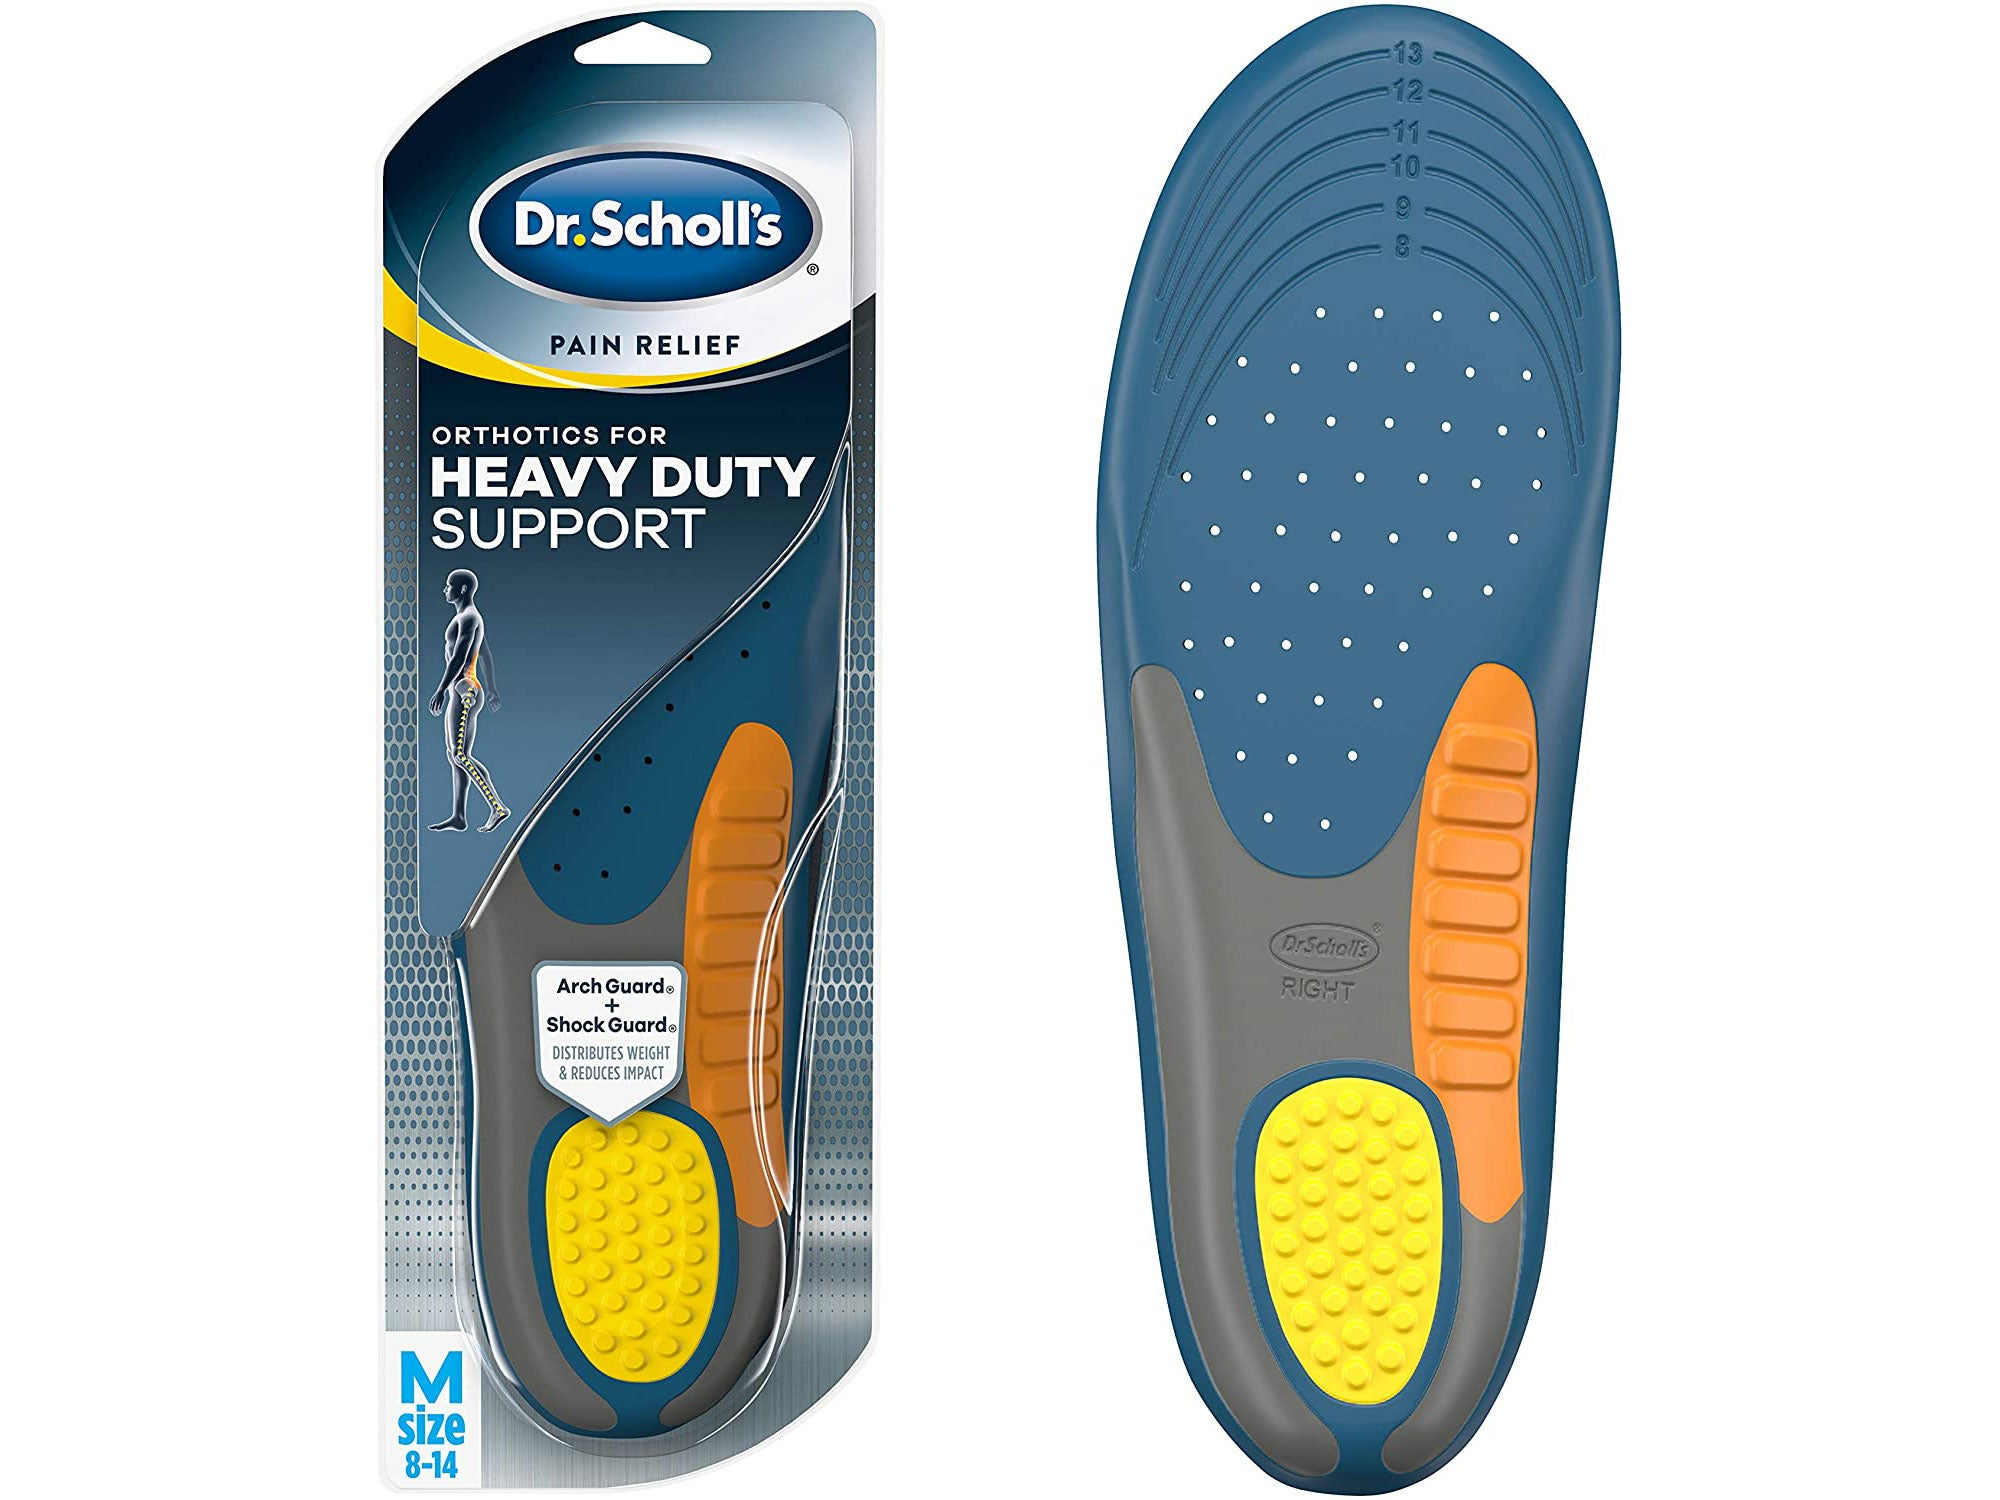 Dr. Scholl's Heavy Duty Support Pain Relief Orthotics